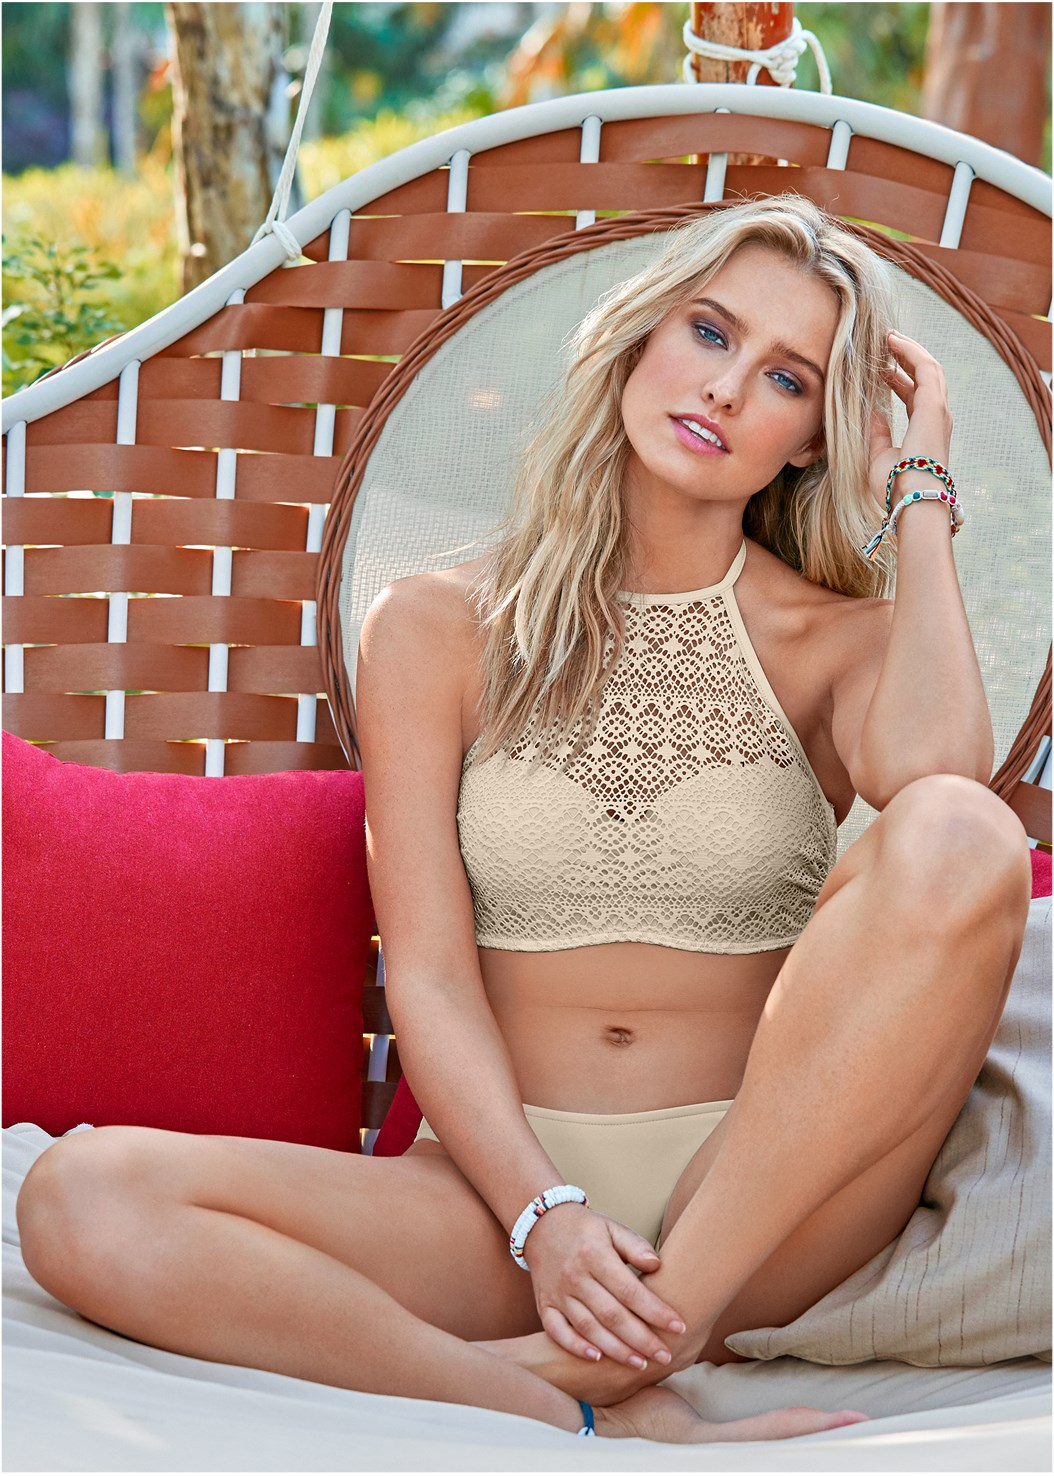 Crochet High Neck Halter Top,Scoop Front Classic Bikini Bottom ,Low Rise Classic Bikini Bottom ,Sheer Cover-Up Dress